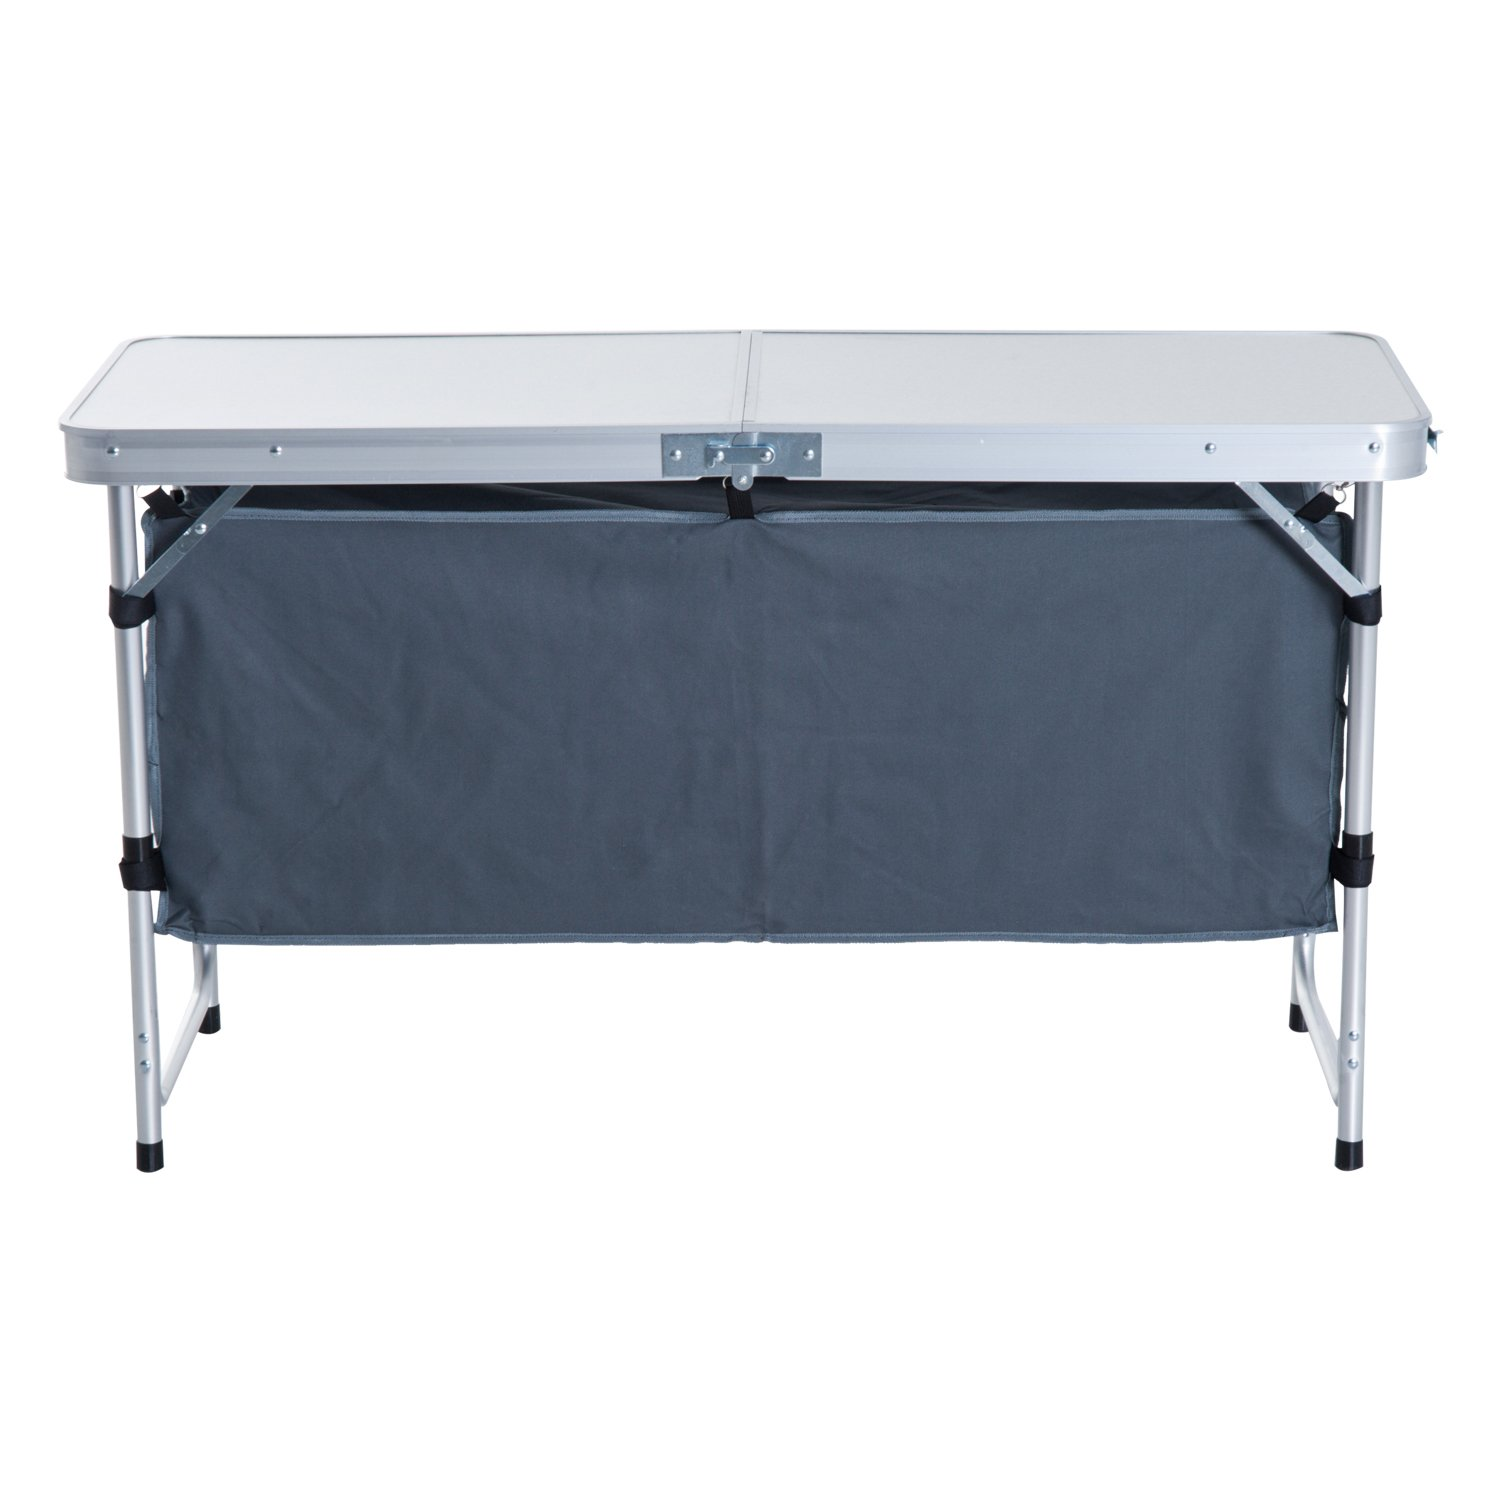 Outsunny Folding Picnic Table Portable Adjustable Camping Table Aluminum Outdoor Dining w// Storage Underneath